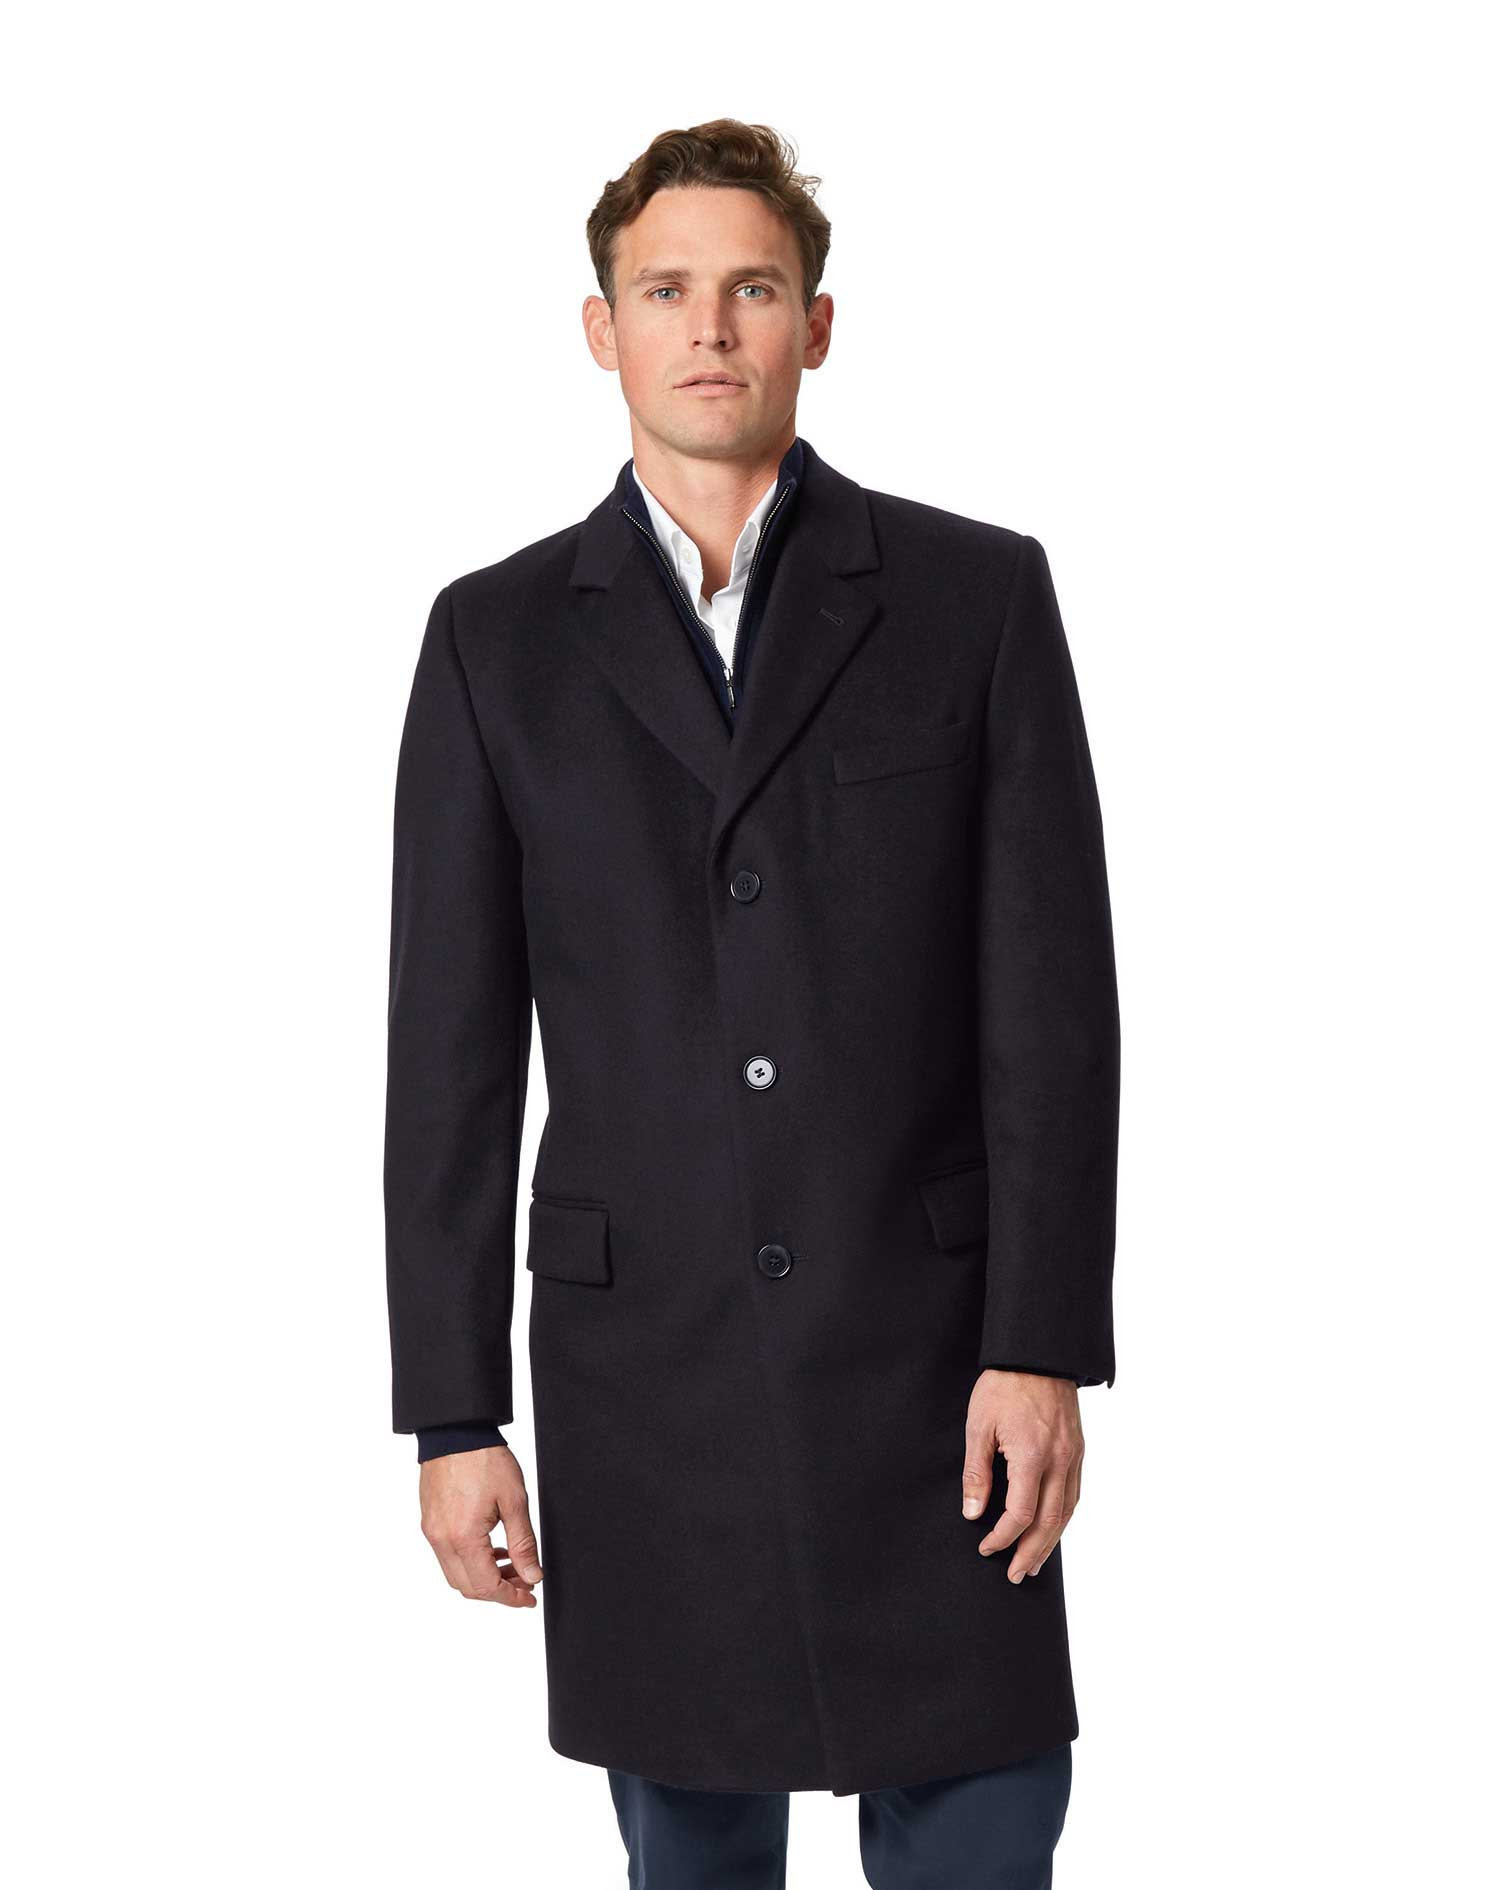 Navy Wool and Cashmere Overcoat Size 48 Long by Charles Tyrwhitt